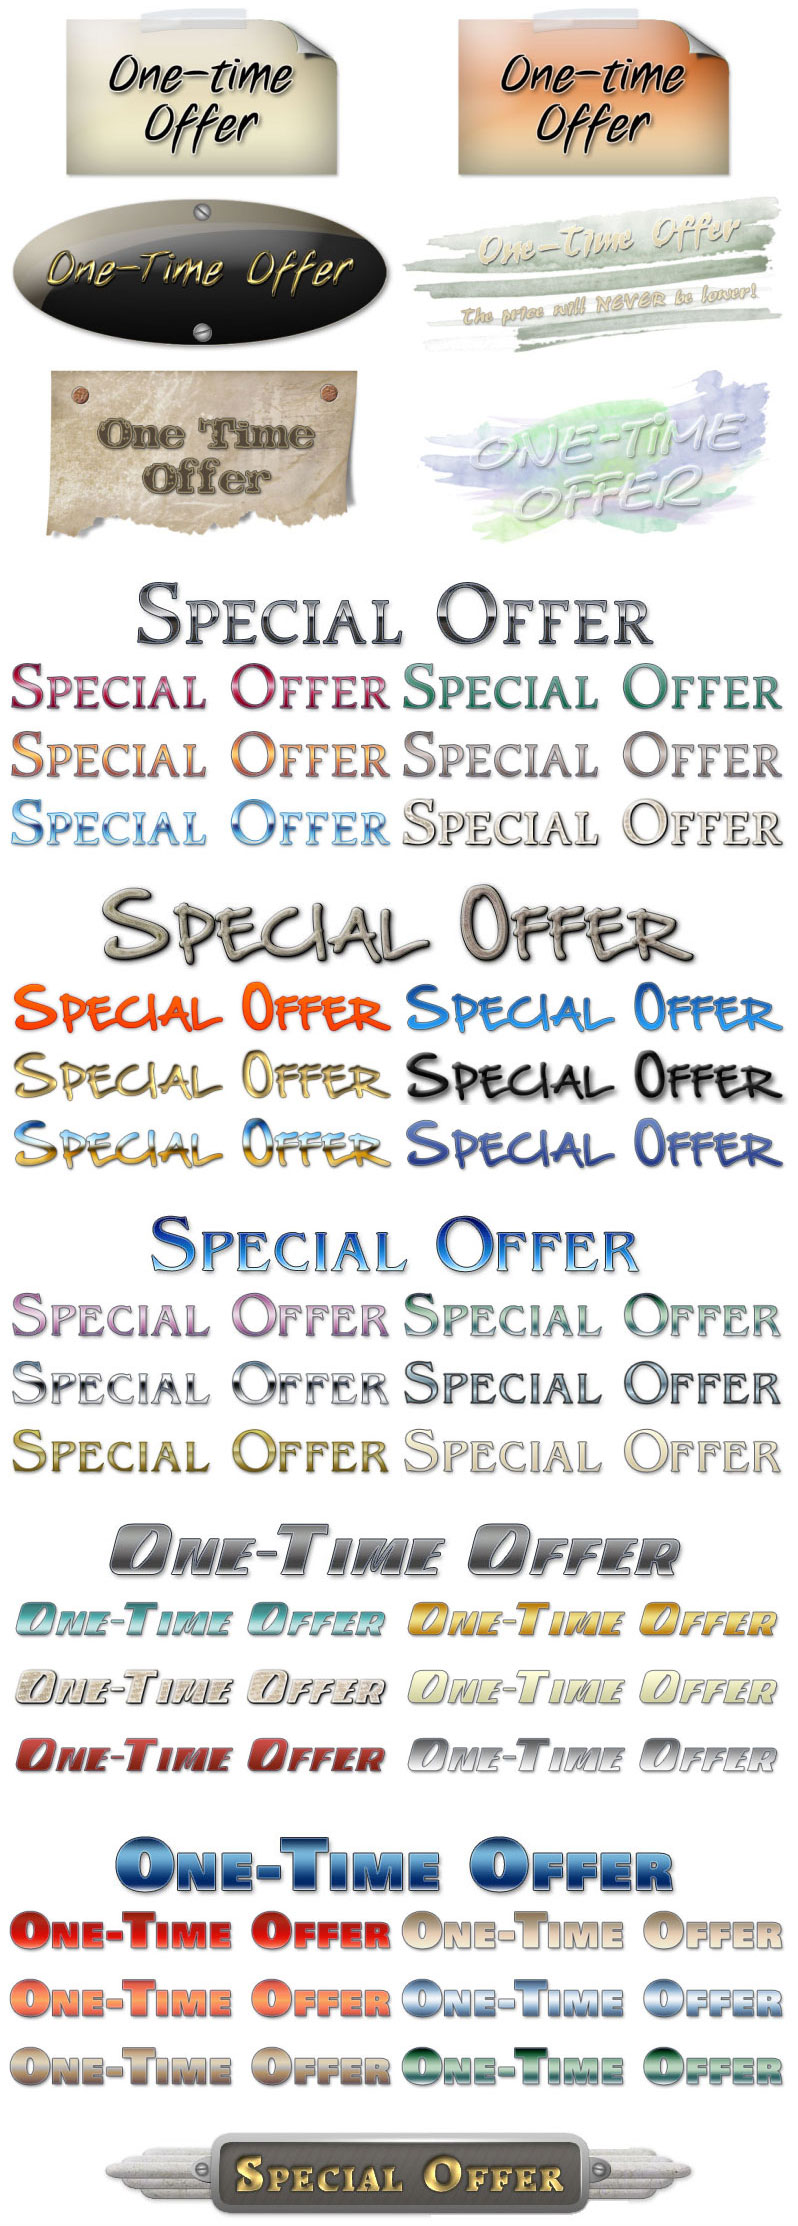 one-time offer and special offers graphic samples